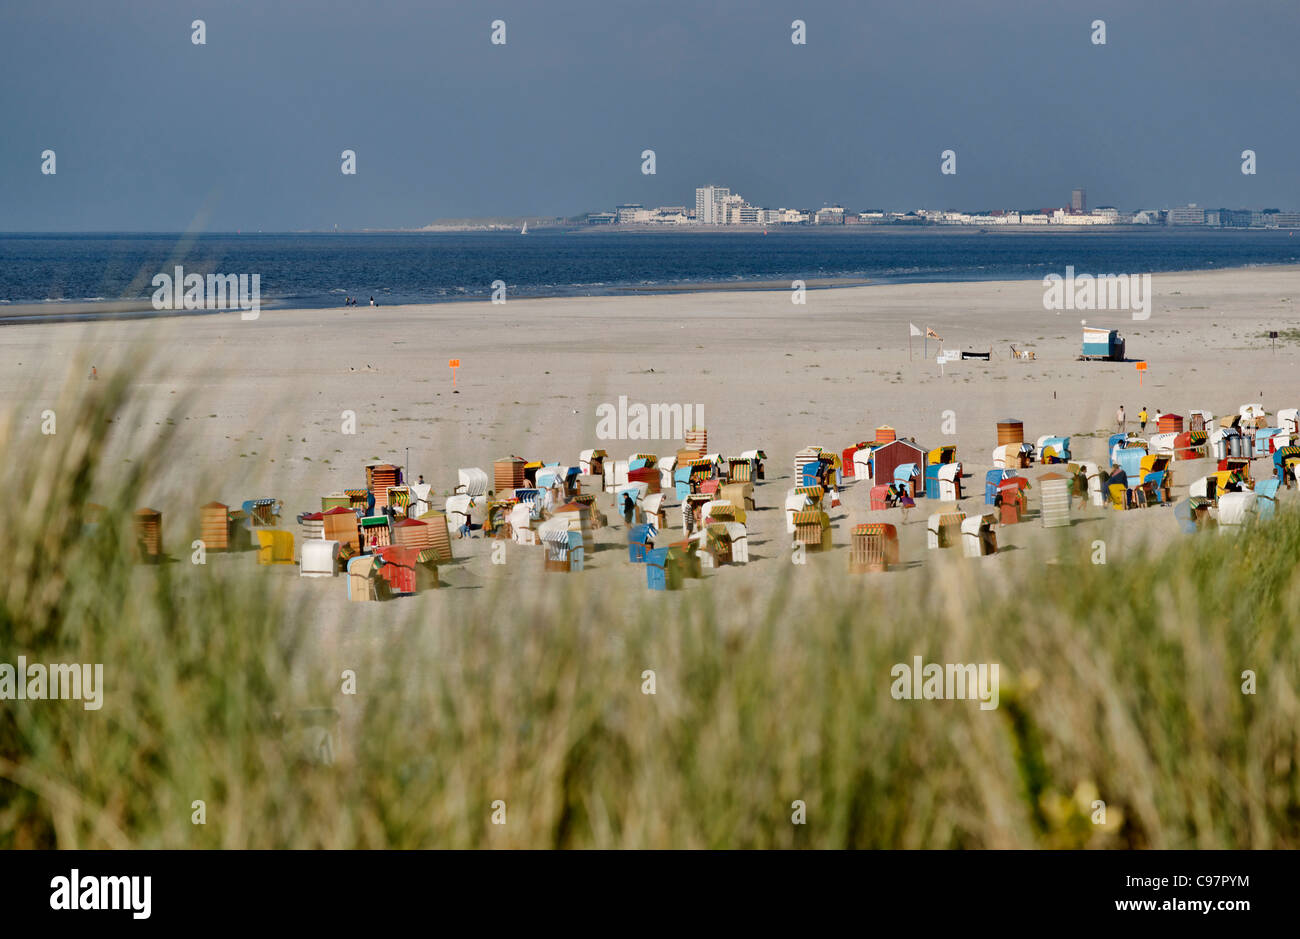 Main Beach with view towards Norderney, North Sea Island Juist, East Frisia, Lower Saxony, Germany Stock Photo